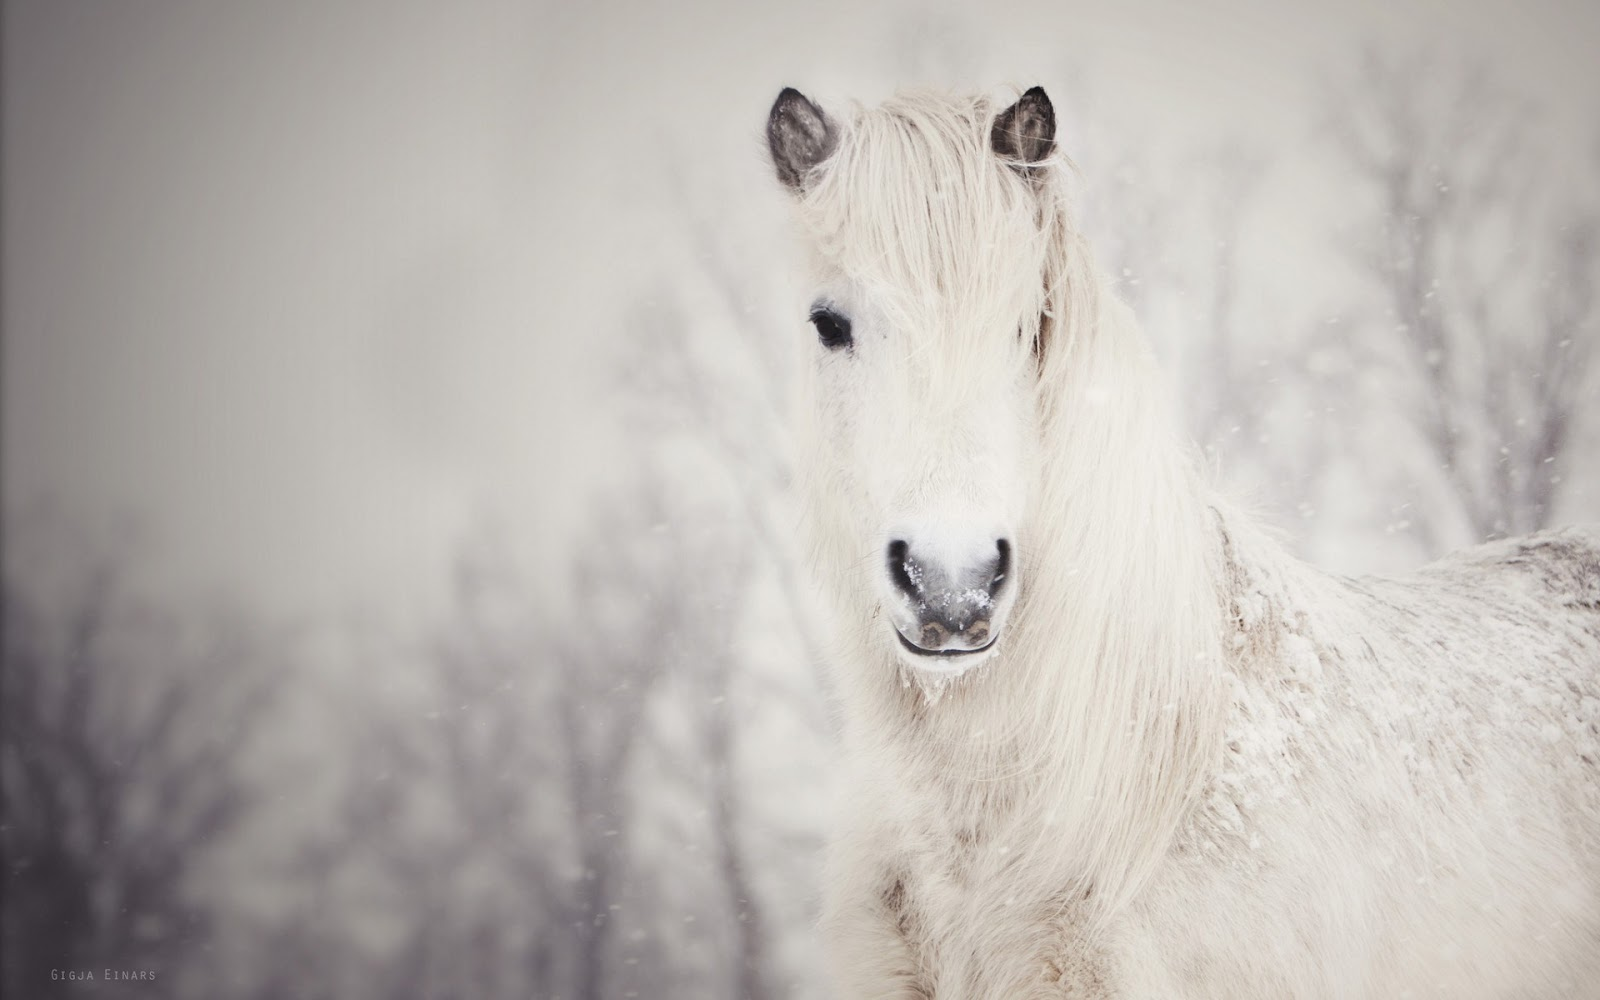 Good   Wallpaper Horse Winter - beauty-horse-winter-snow-photo-wallpaper-1920x1200  Snapshot_545458.jpg